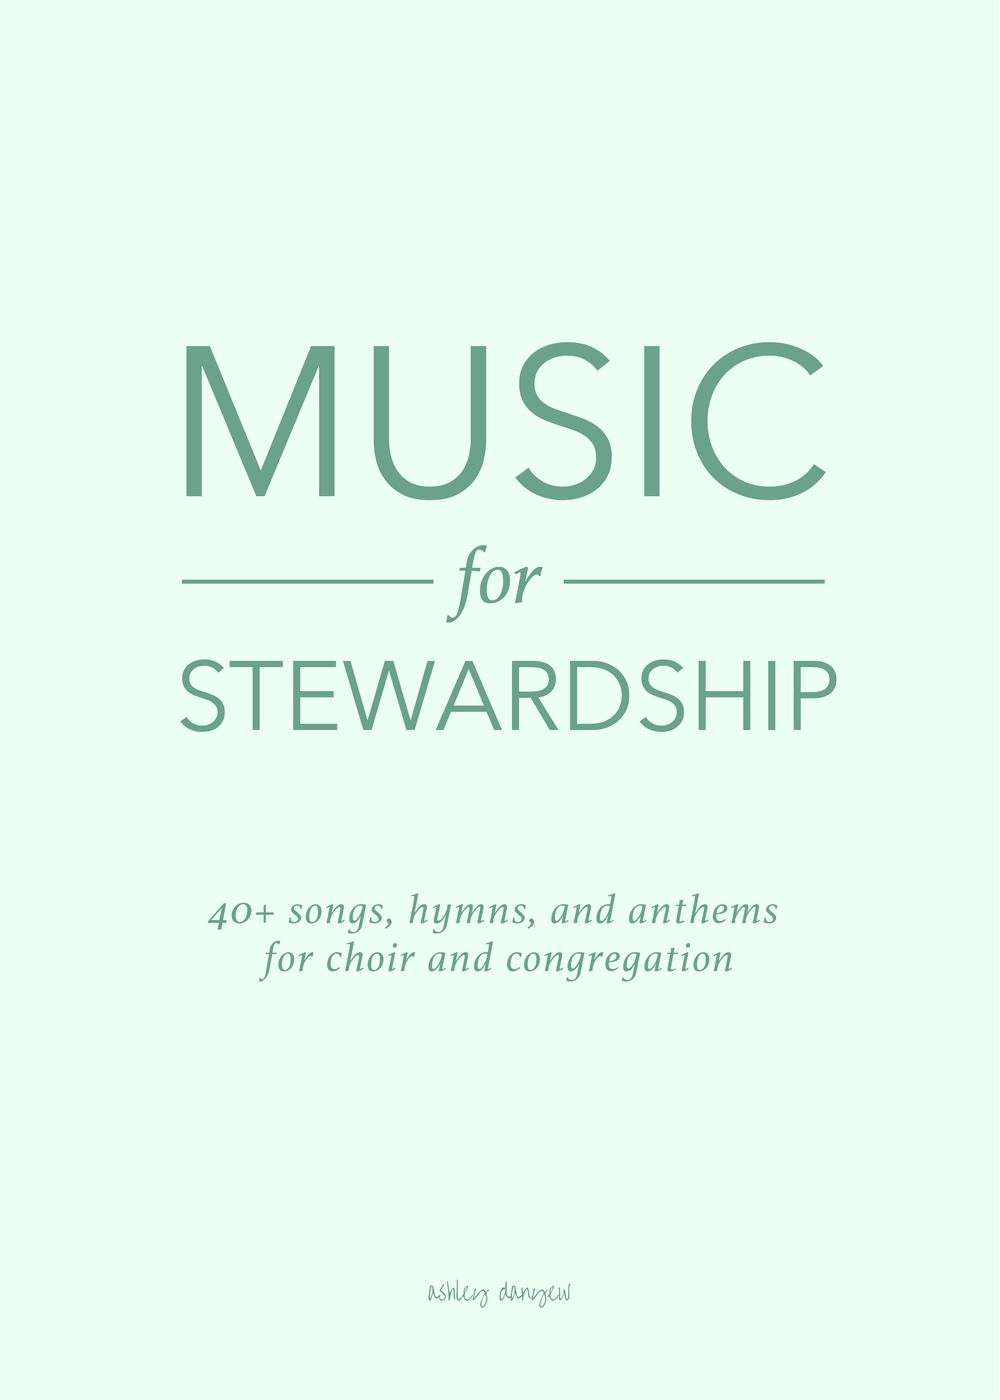 Copy of Music for Stewardship: 40+ Hymns, Songs, and Anthems